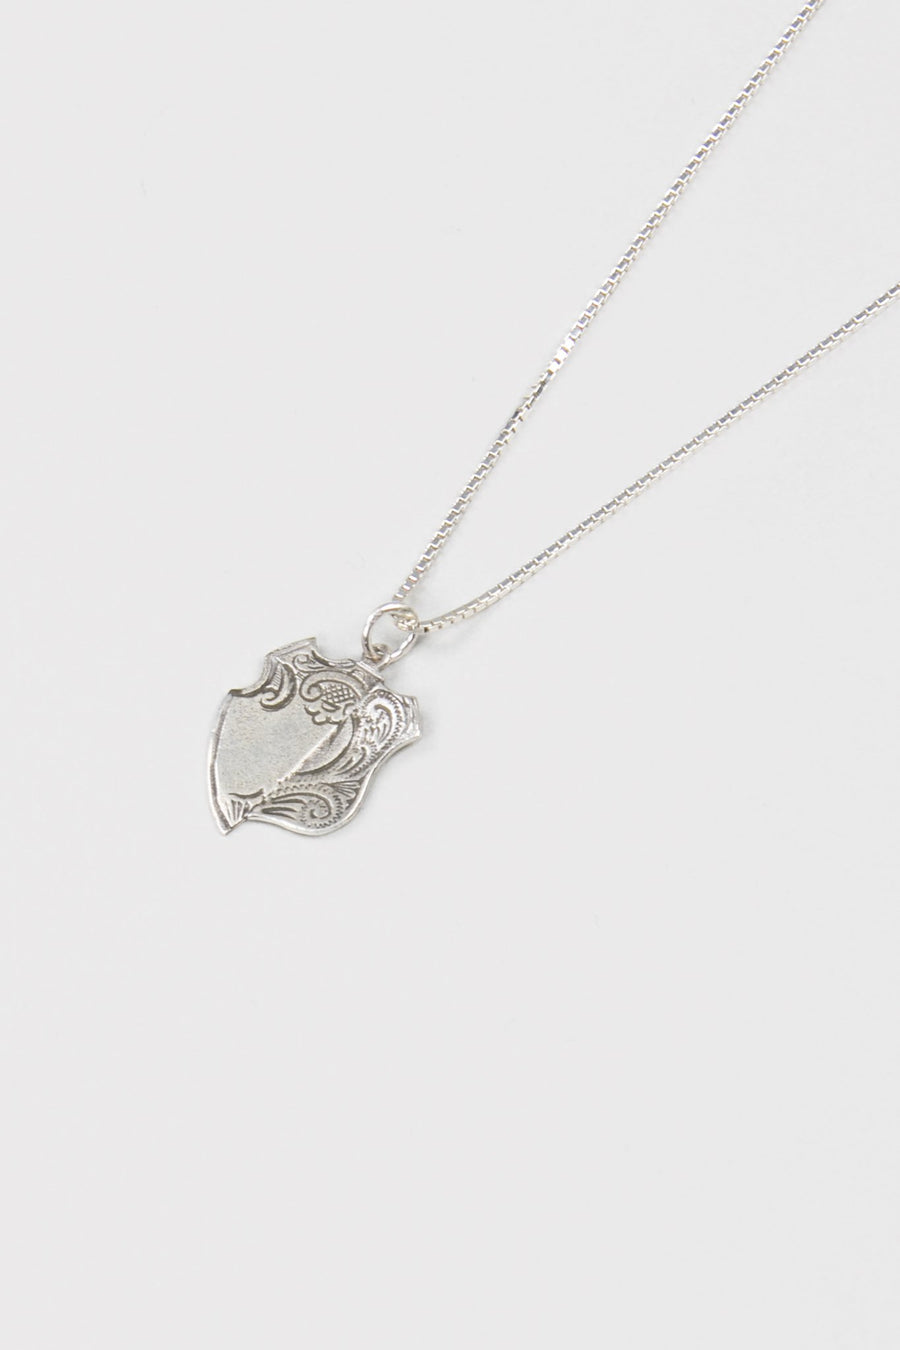 Company Of Strangers - Broken Medal Necklace Silver